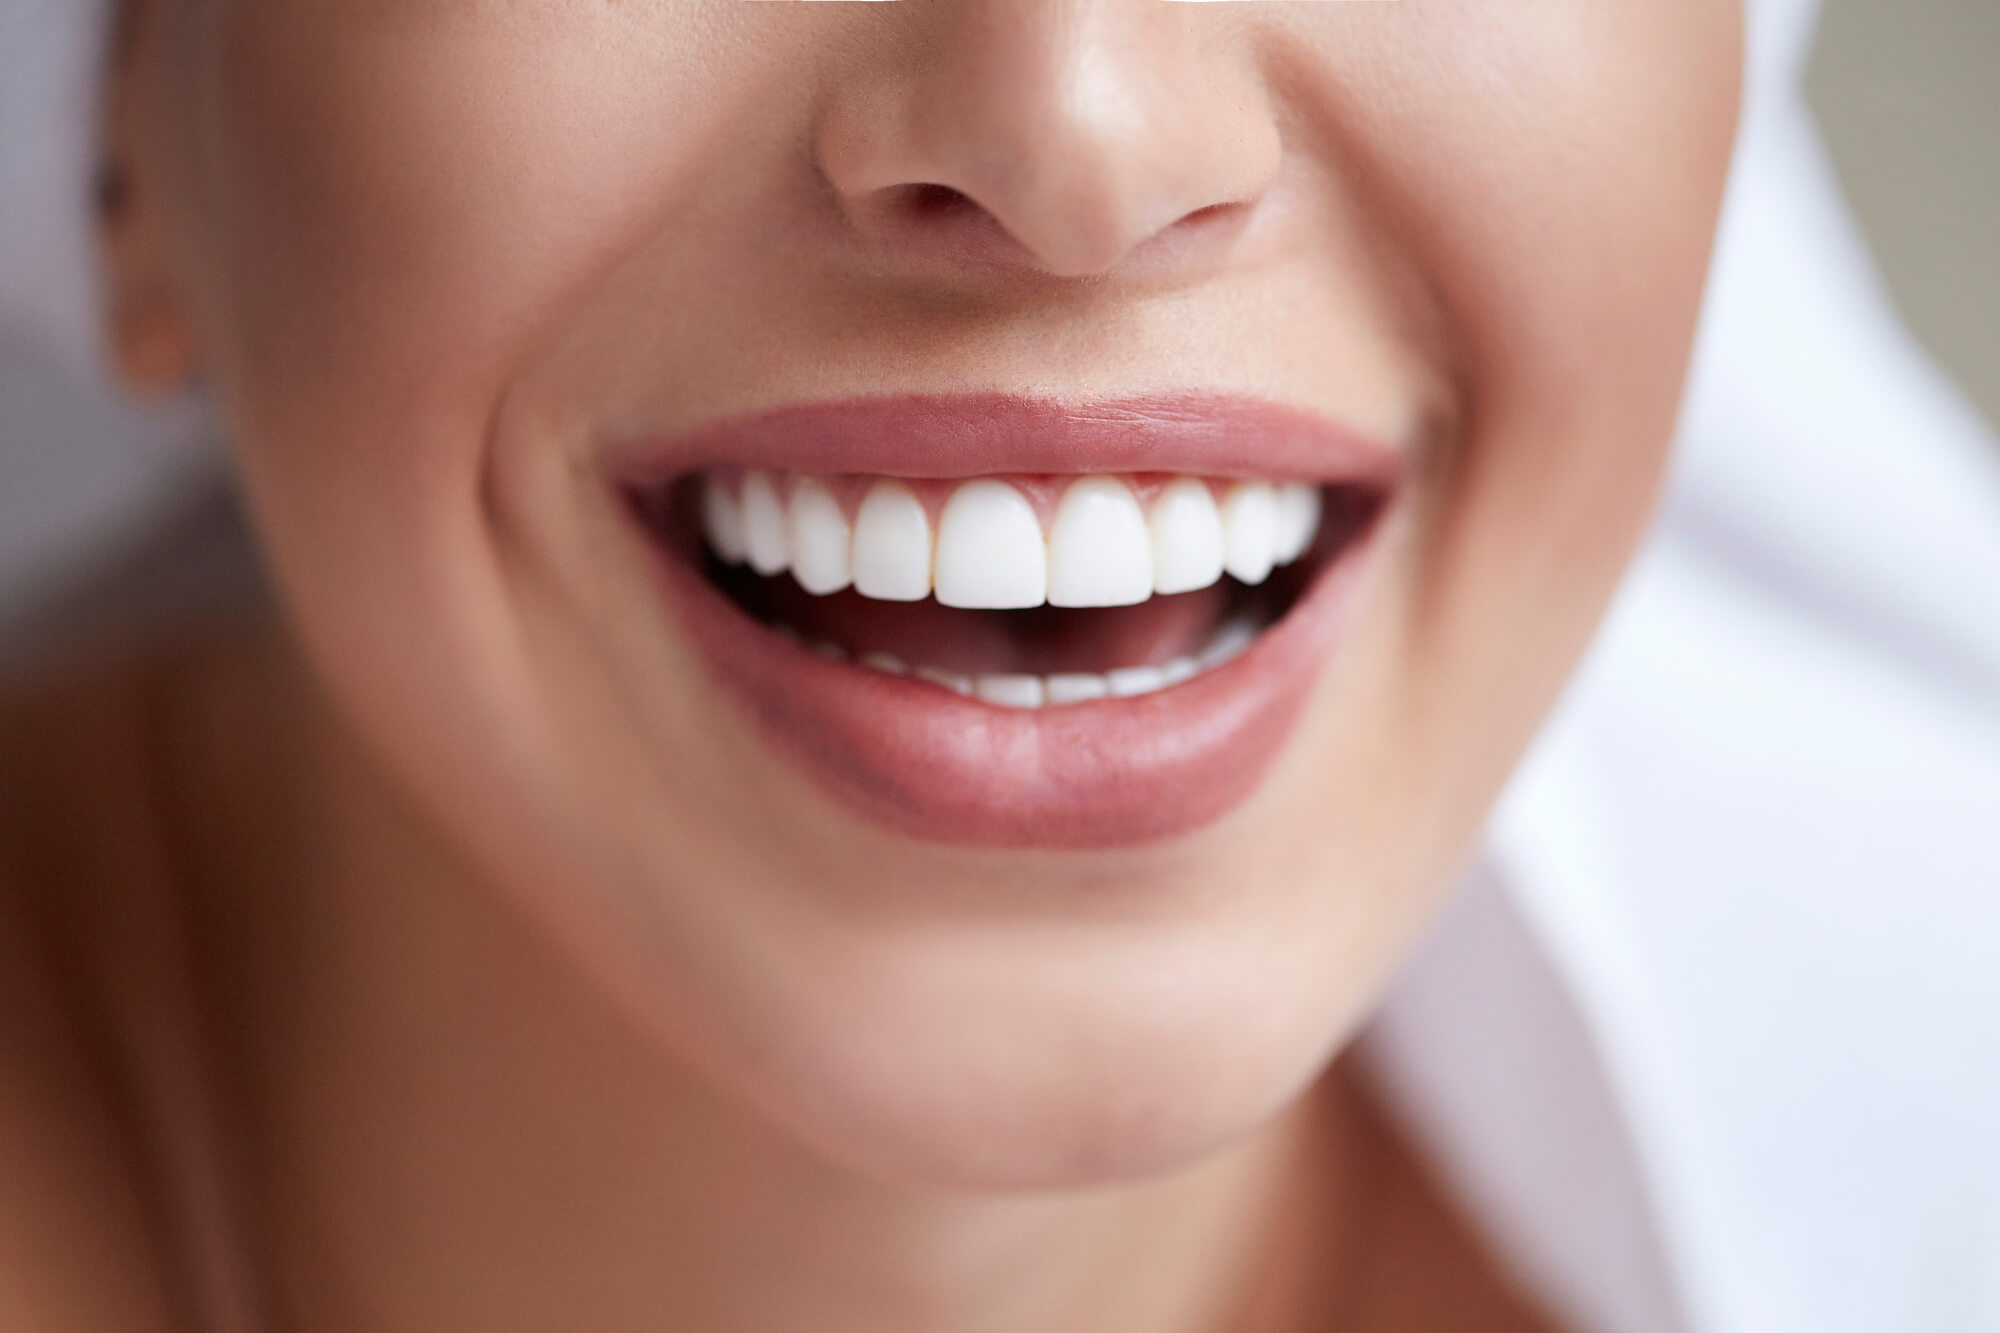 who offers the best doral dentist?